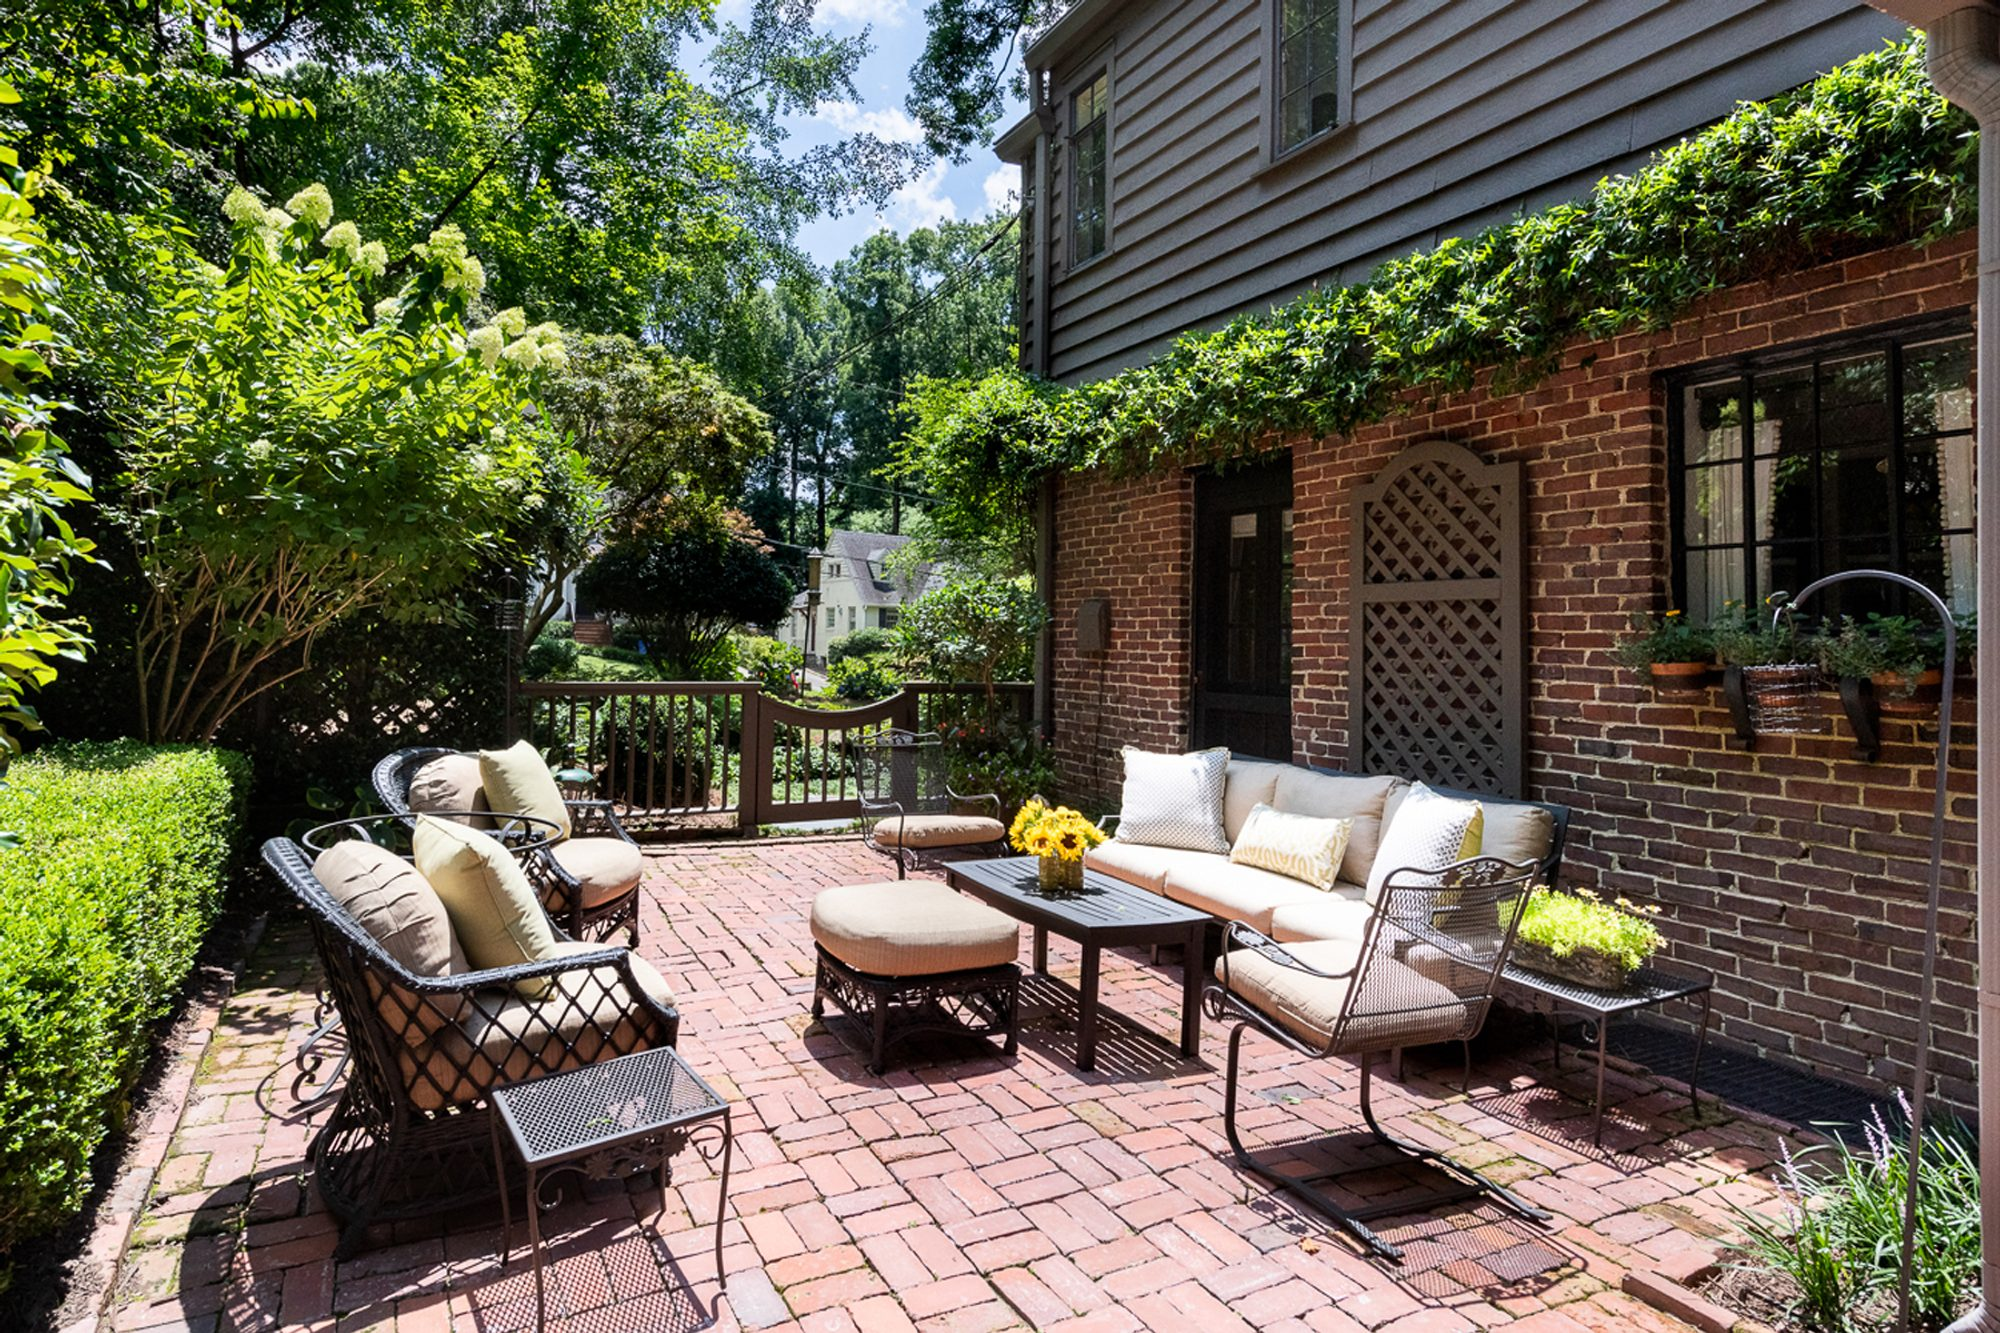 Red brick backyard patio with a basket weave pattern.  Black outdoor furniture set with cream colored cushions.